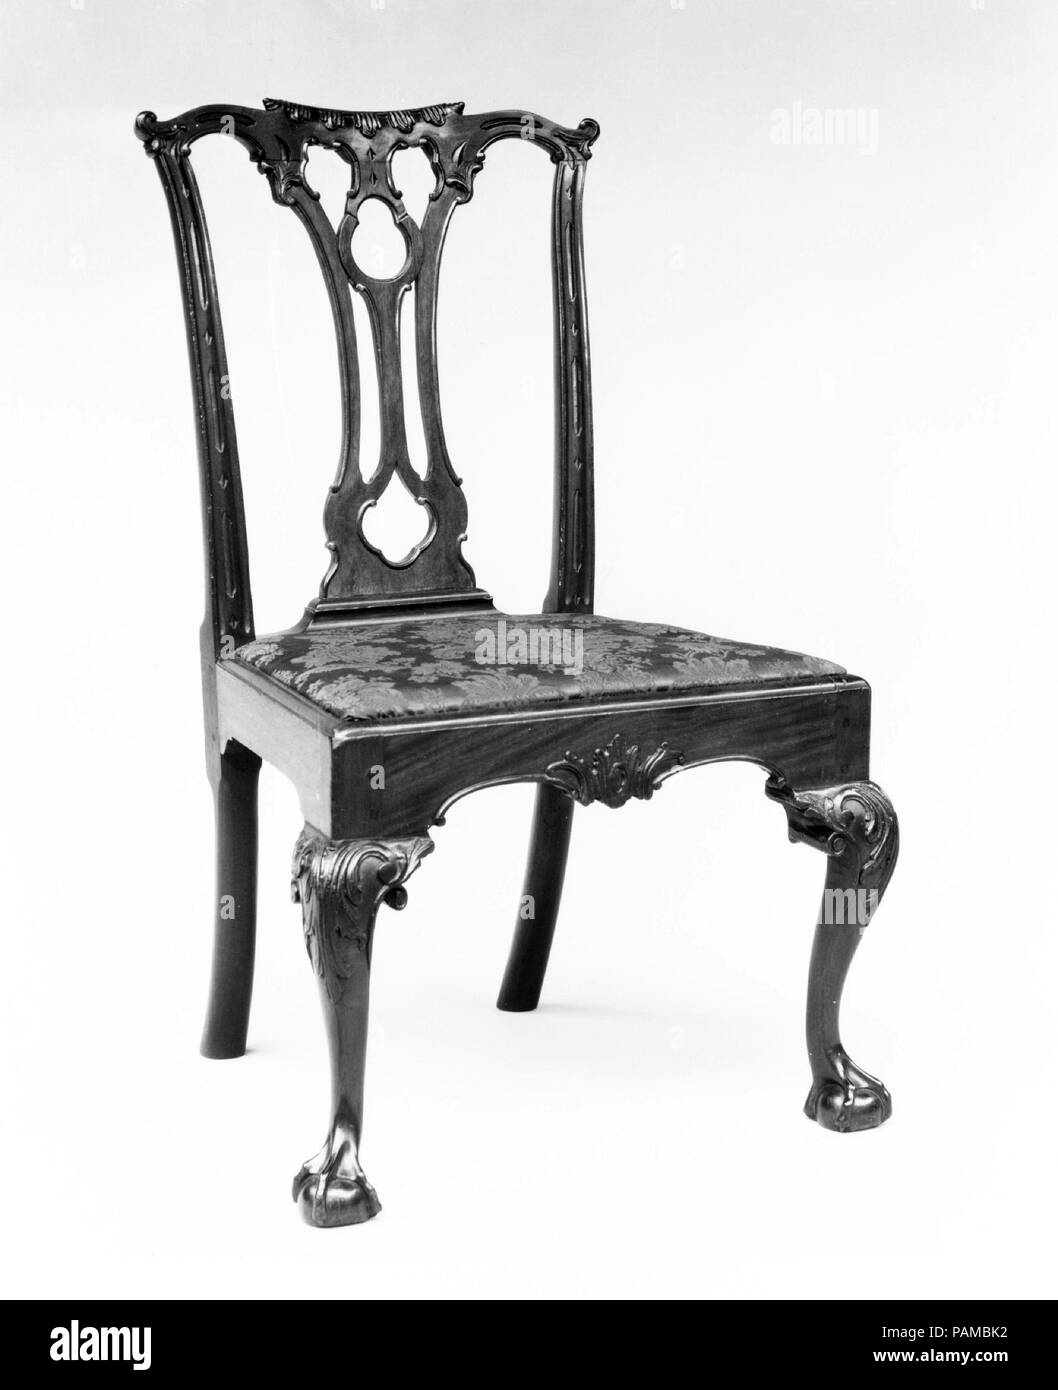 Side chair. Culture: American. Dimensions: 38 3/4 x 22 3/8 x 21 1/2 in. (98.4 x 56.8 x 54.6 cm). Date: 1760-90.  Chairs with trefoil-pierced splats enjoyed great popularity in Philadelphia. On the most richly embellished examples, such as this one, the stiles and crest rail are finely carved in alternating long and short lozenges. Museum: Metropolitan Museum of Art, New York, USA. - Stock Image